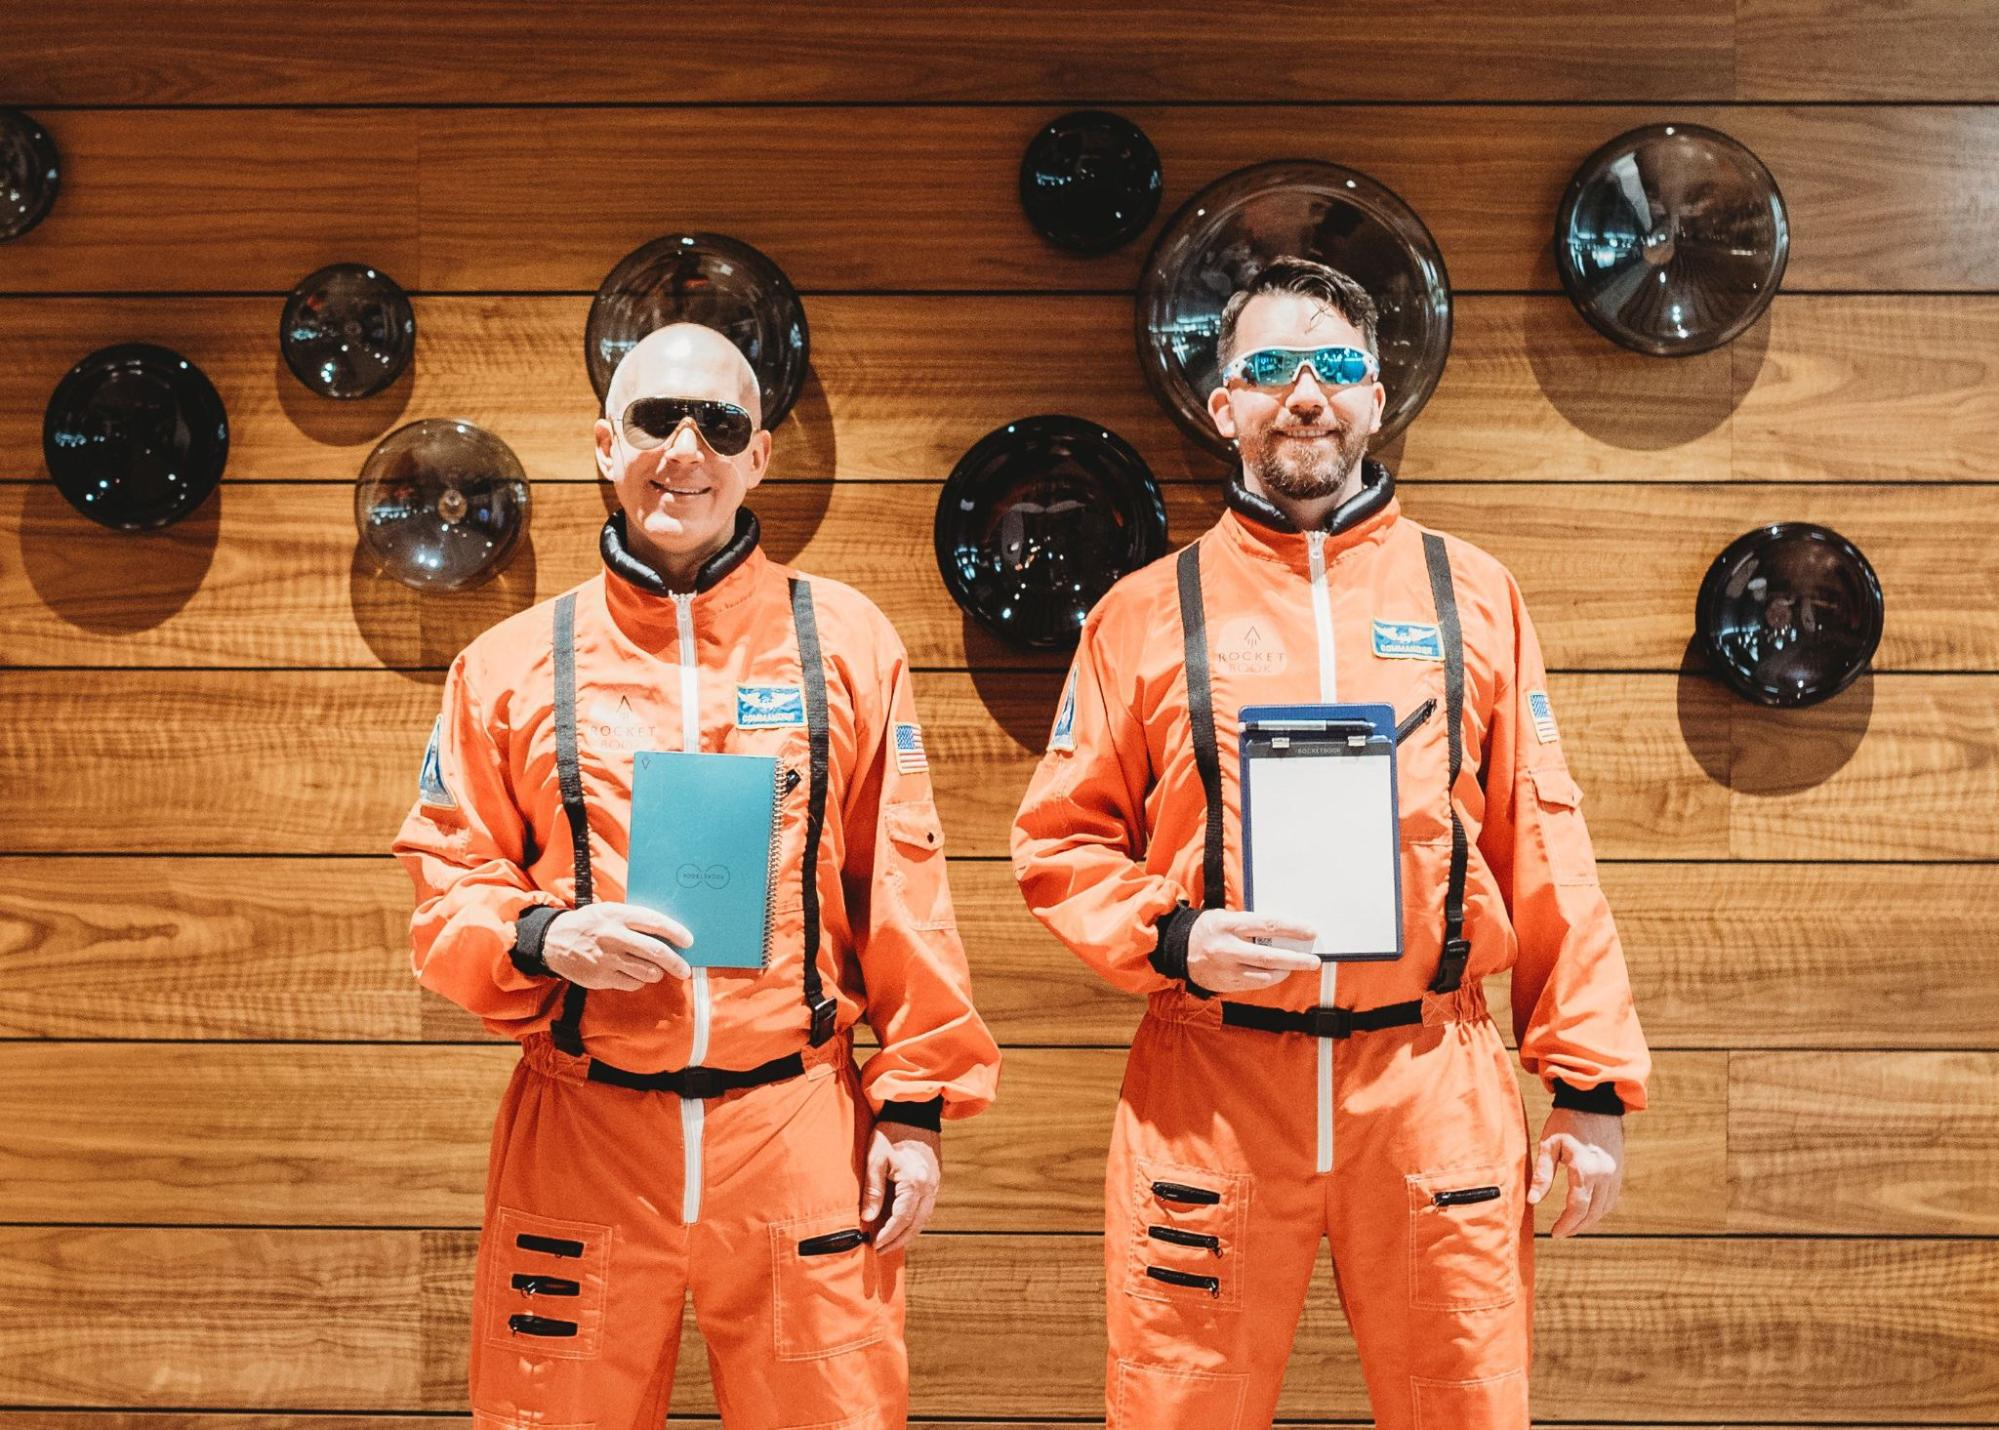 Joe Lamey and Jake Epstein in their astronaut suits and Rockebooks.